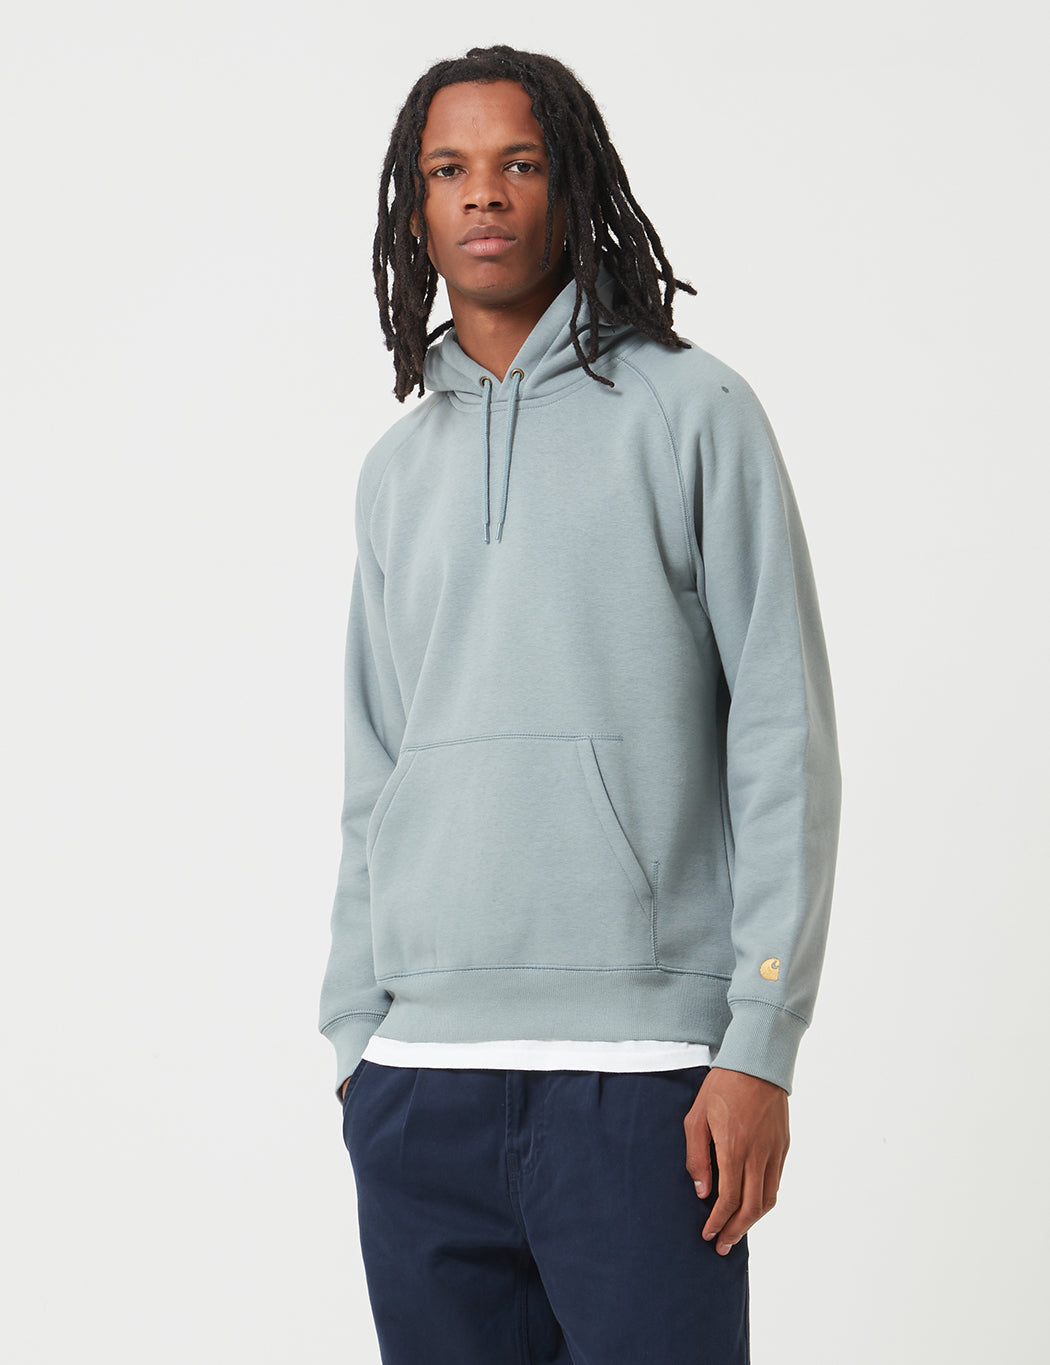 Carhartt-WIP Chase Hooded Sweatshirt - Cloudy White